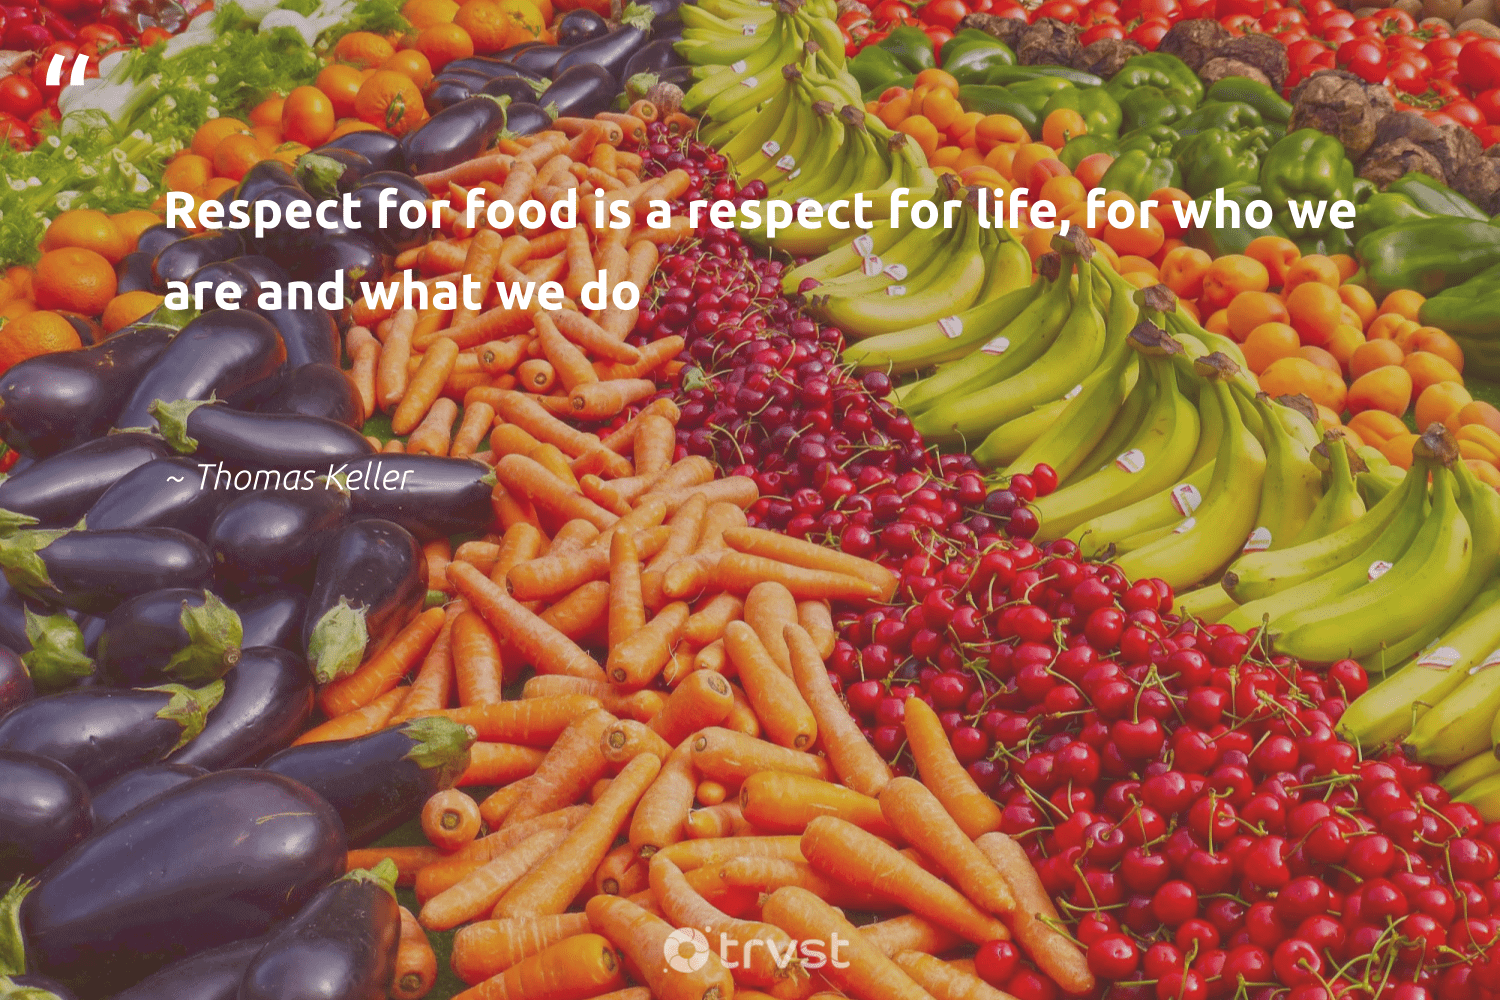 """""""Respect for food is a respect for life, for who we are and what we do""""  - Thomas Keller #trvst #quotes #food #foodforthepoor #wastenotwantnot #makeadifference #bethechange #hungry #environment #equalrights #dogood #hunger"""